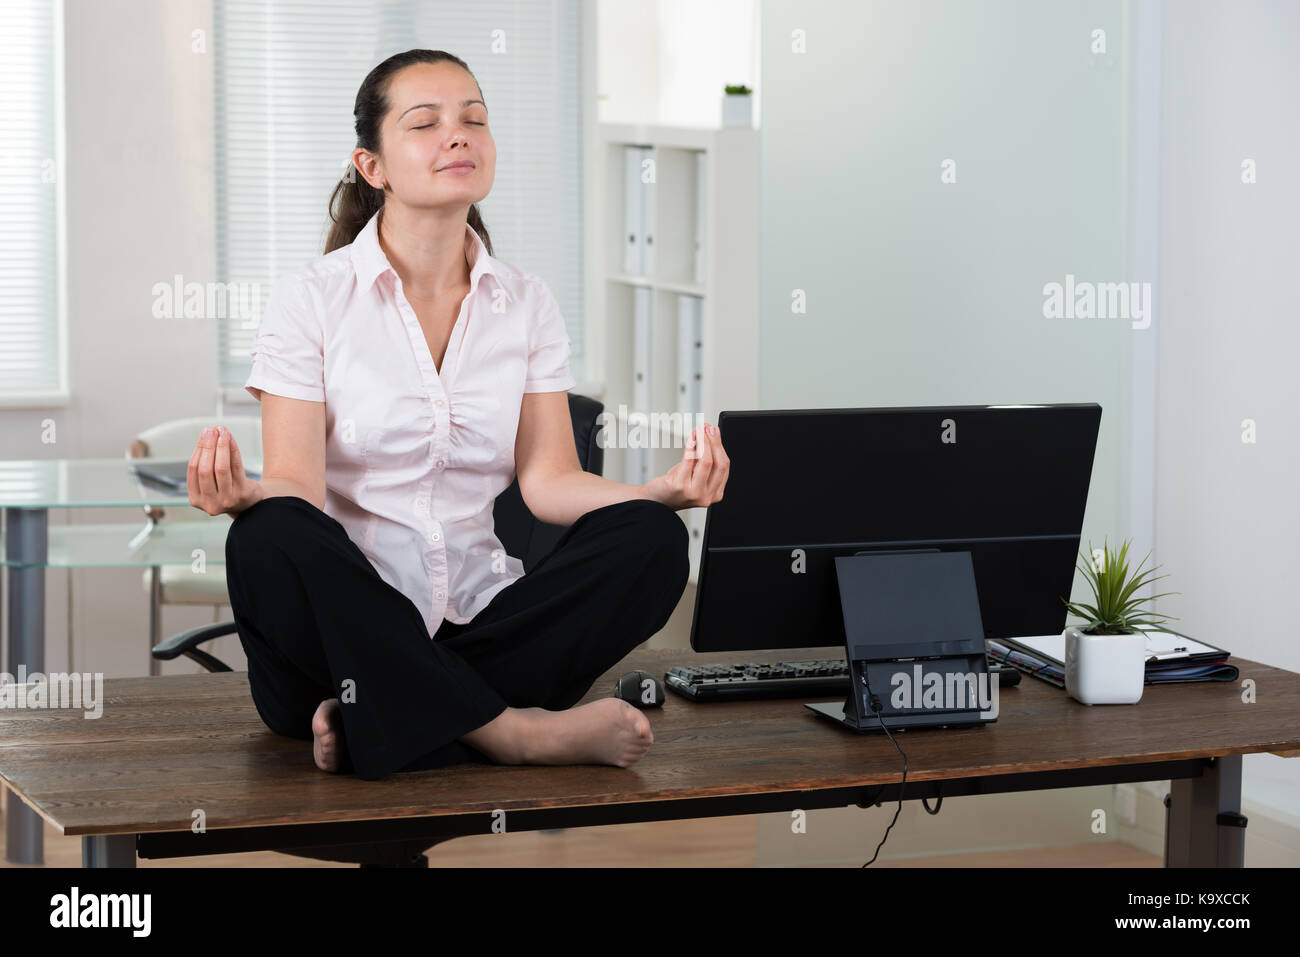 Young Businesswoman Doing Meditation On Desk In Office